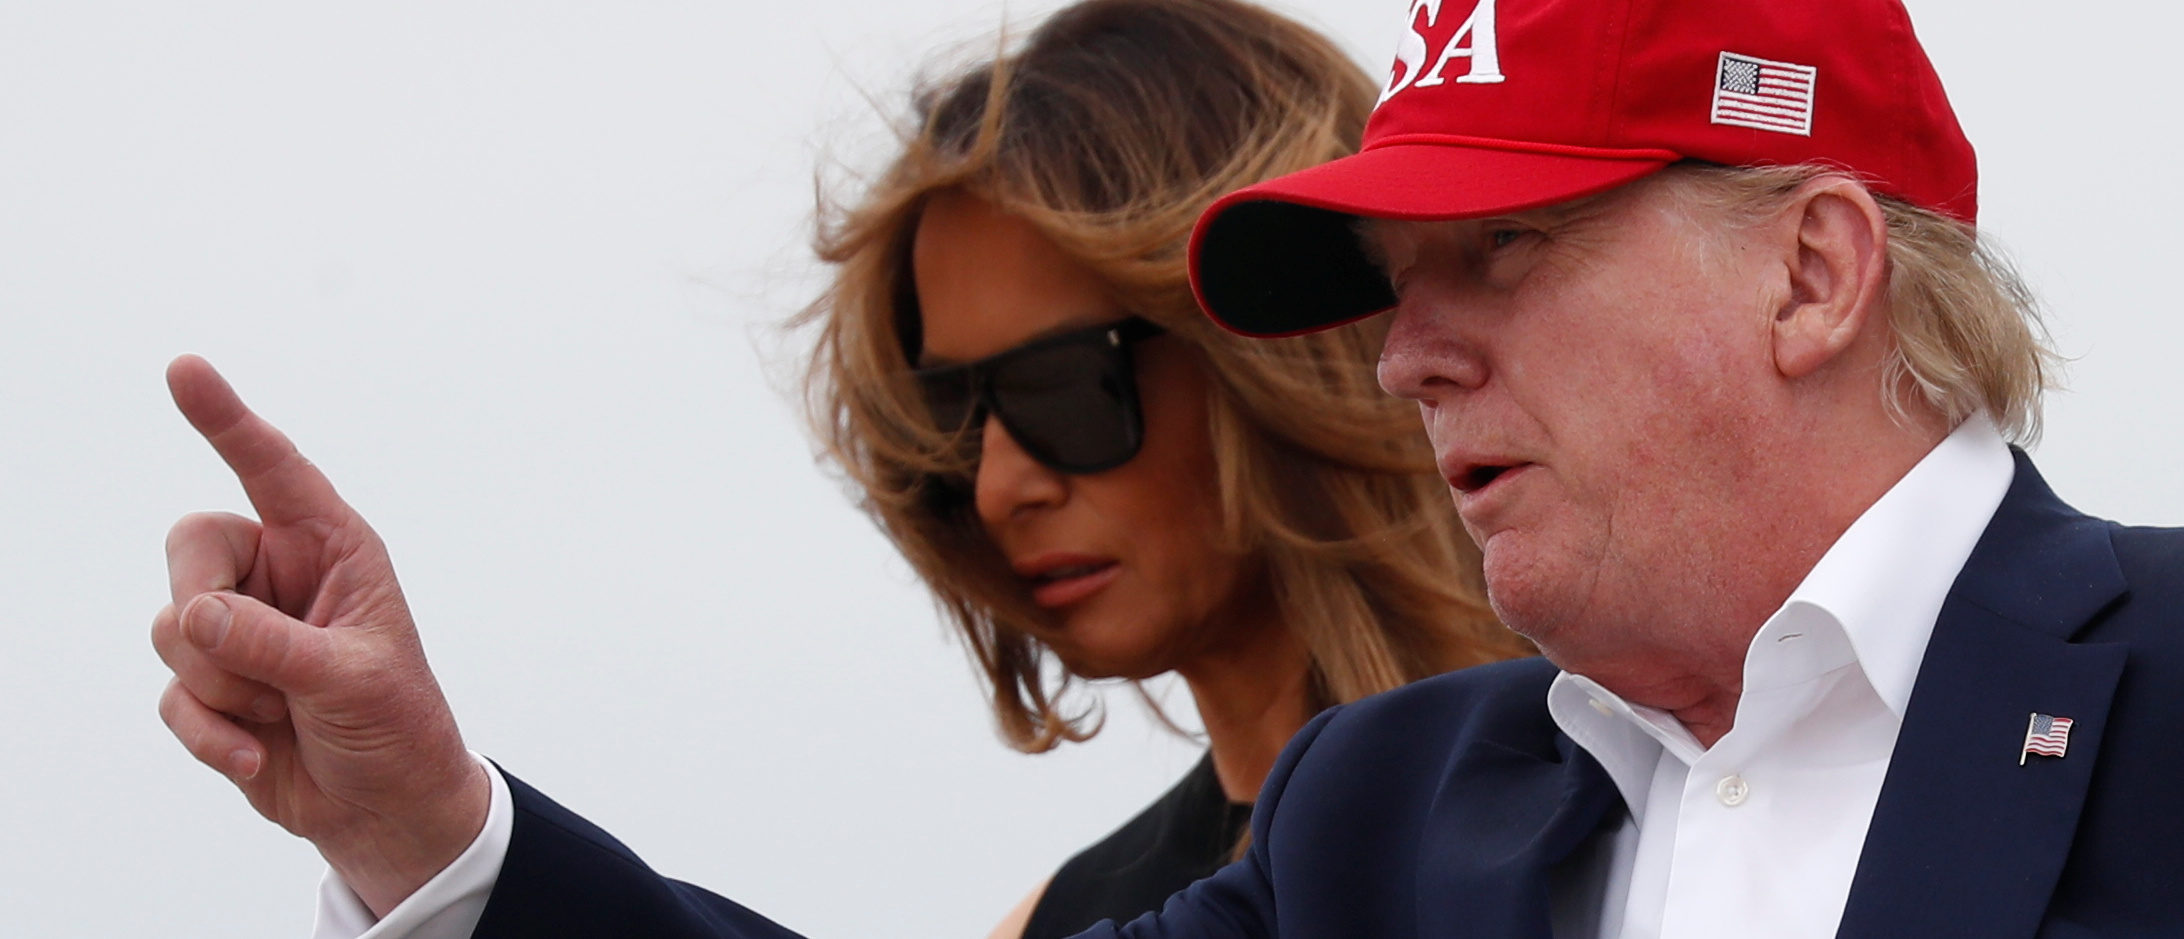 U.S. President Donald Trump and first lady Melania Trump disembark from Air Force One as they arrive following overseas travel at Joint Base Andrews, Maryland, June 7, 2019. REUTERS/Carlos Barria